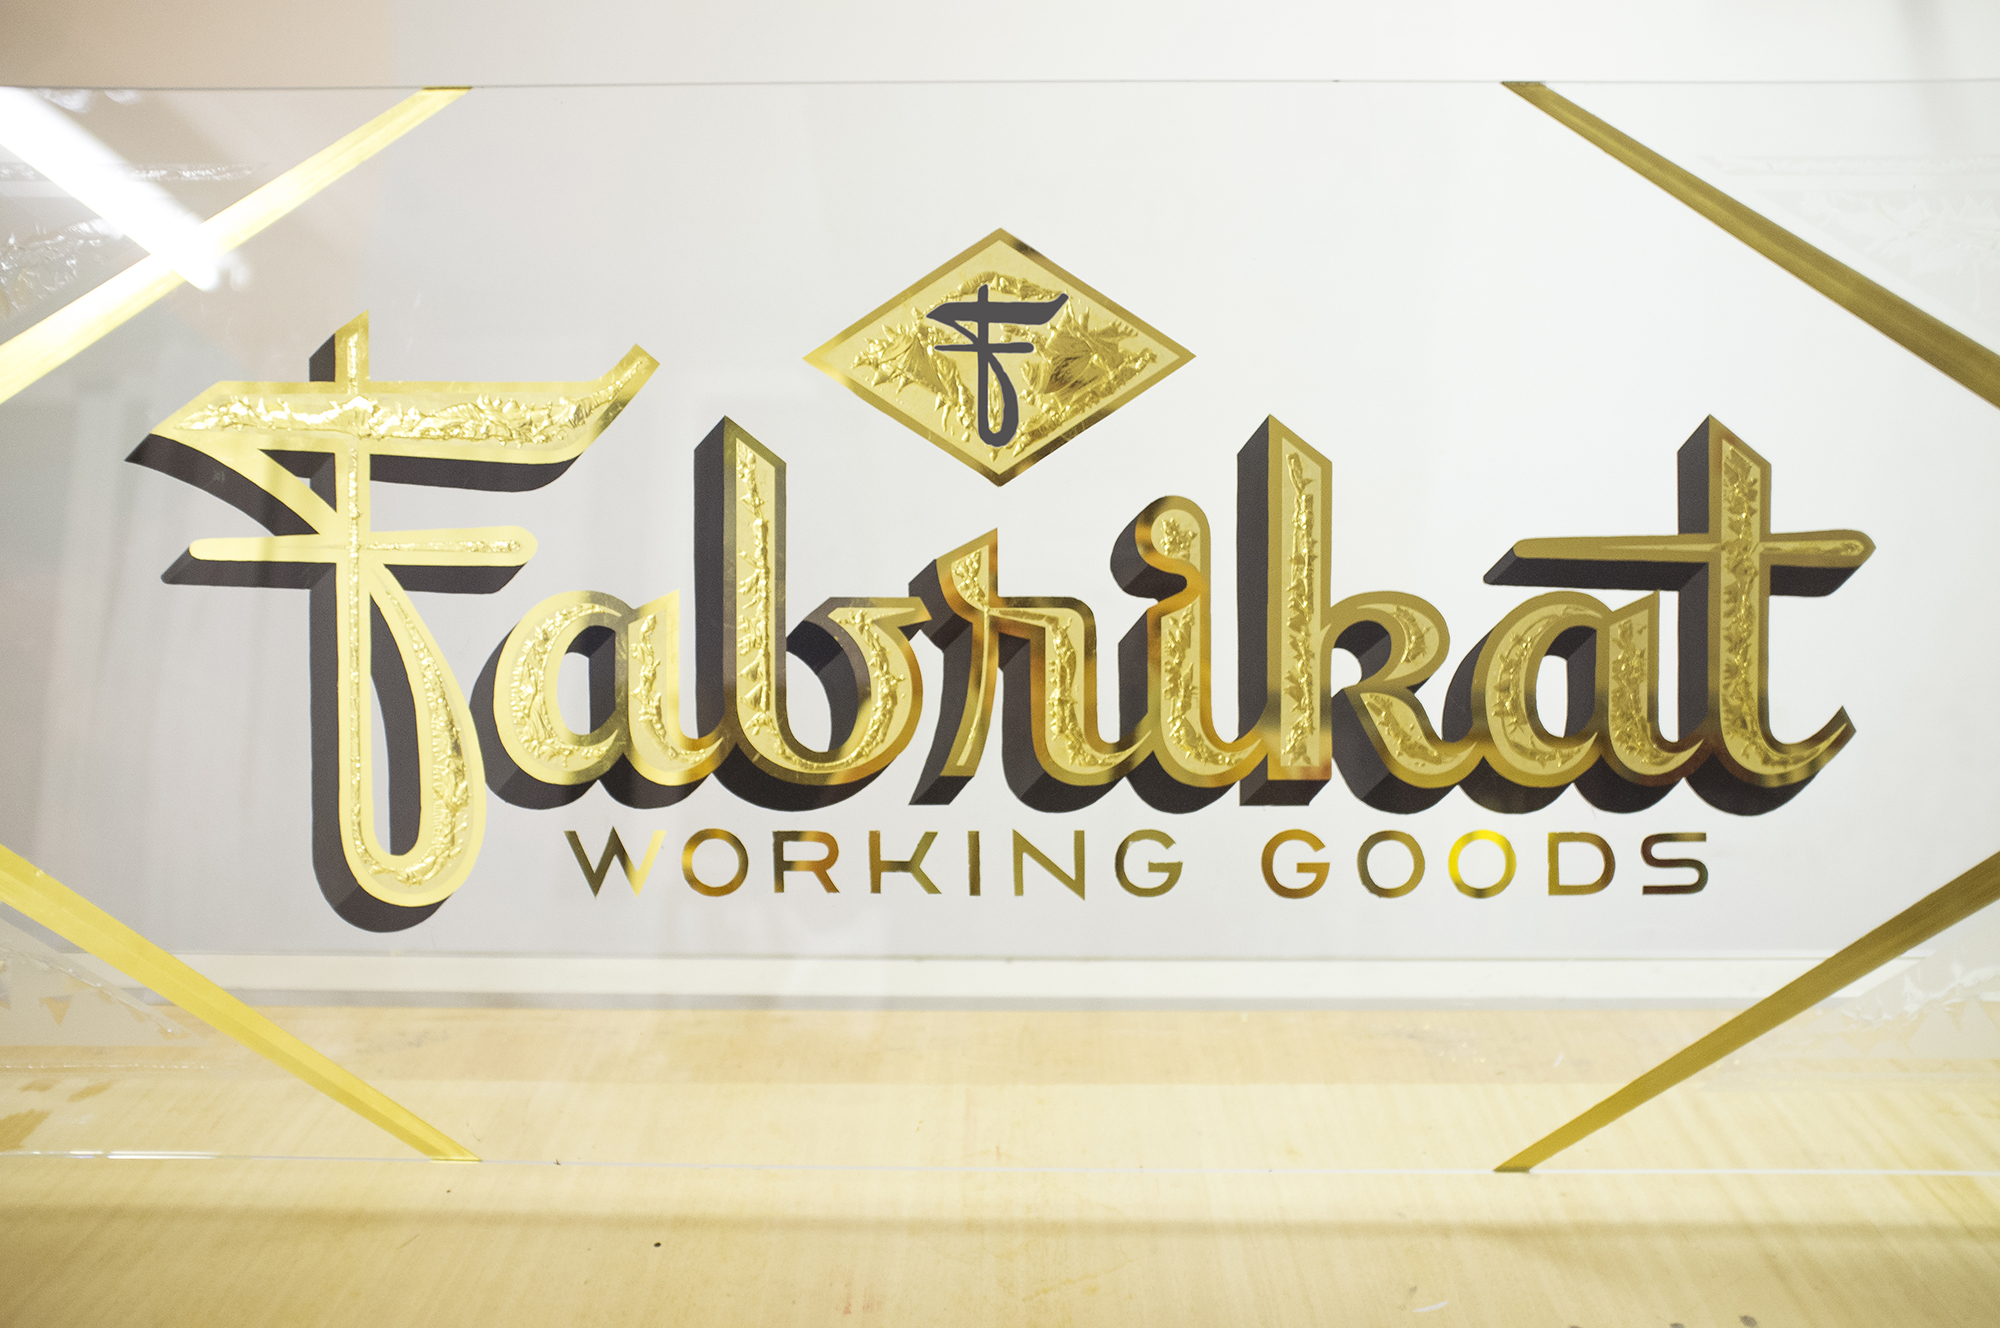 Fabrikat, glue chipping, 23,75 Karat, Schriftenmalerei, Wandbeschriftung, hand gemalt, Tafelbeschriftung, Tafelmaler, sign painting, Zürich, Mathias Truniger, hand lettering, type design, Hinterglasvergoldung, reverse glass gilding, gold leaf